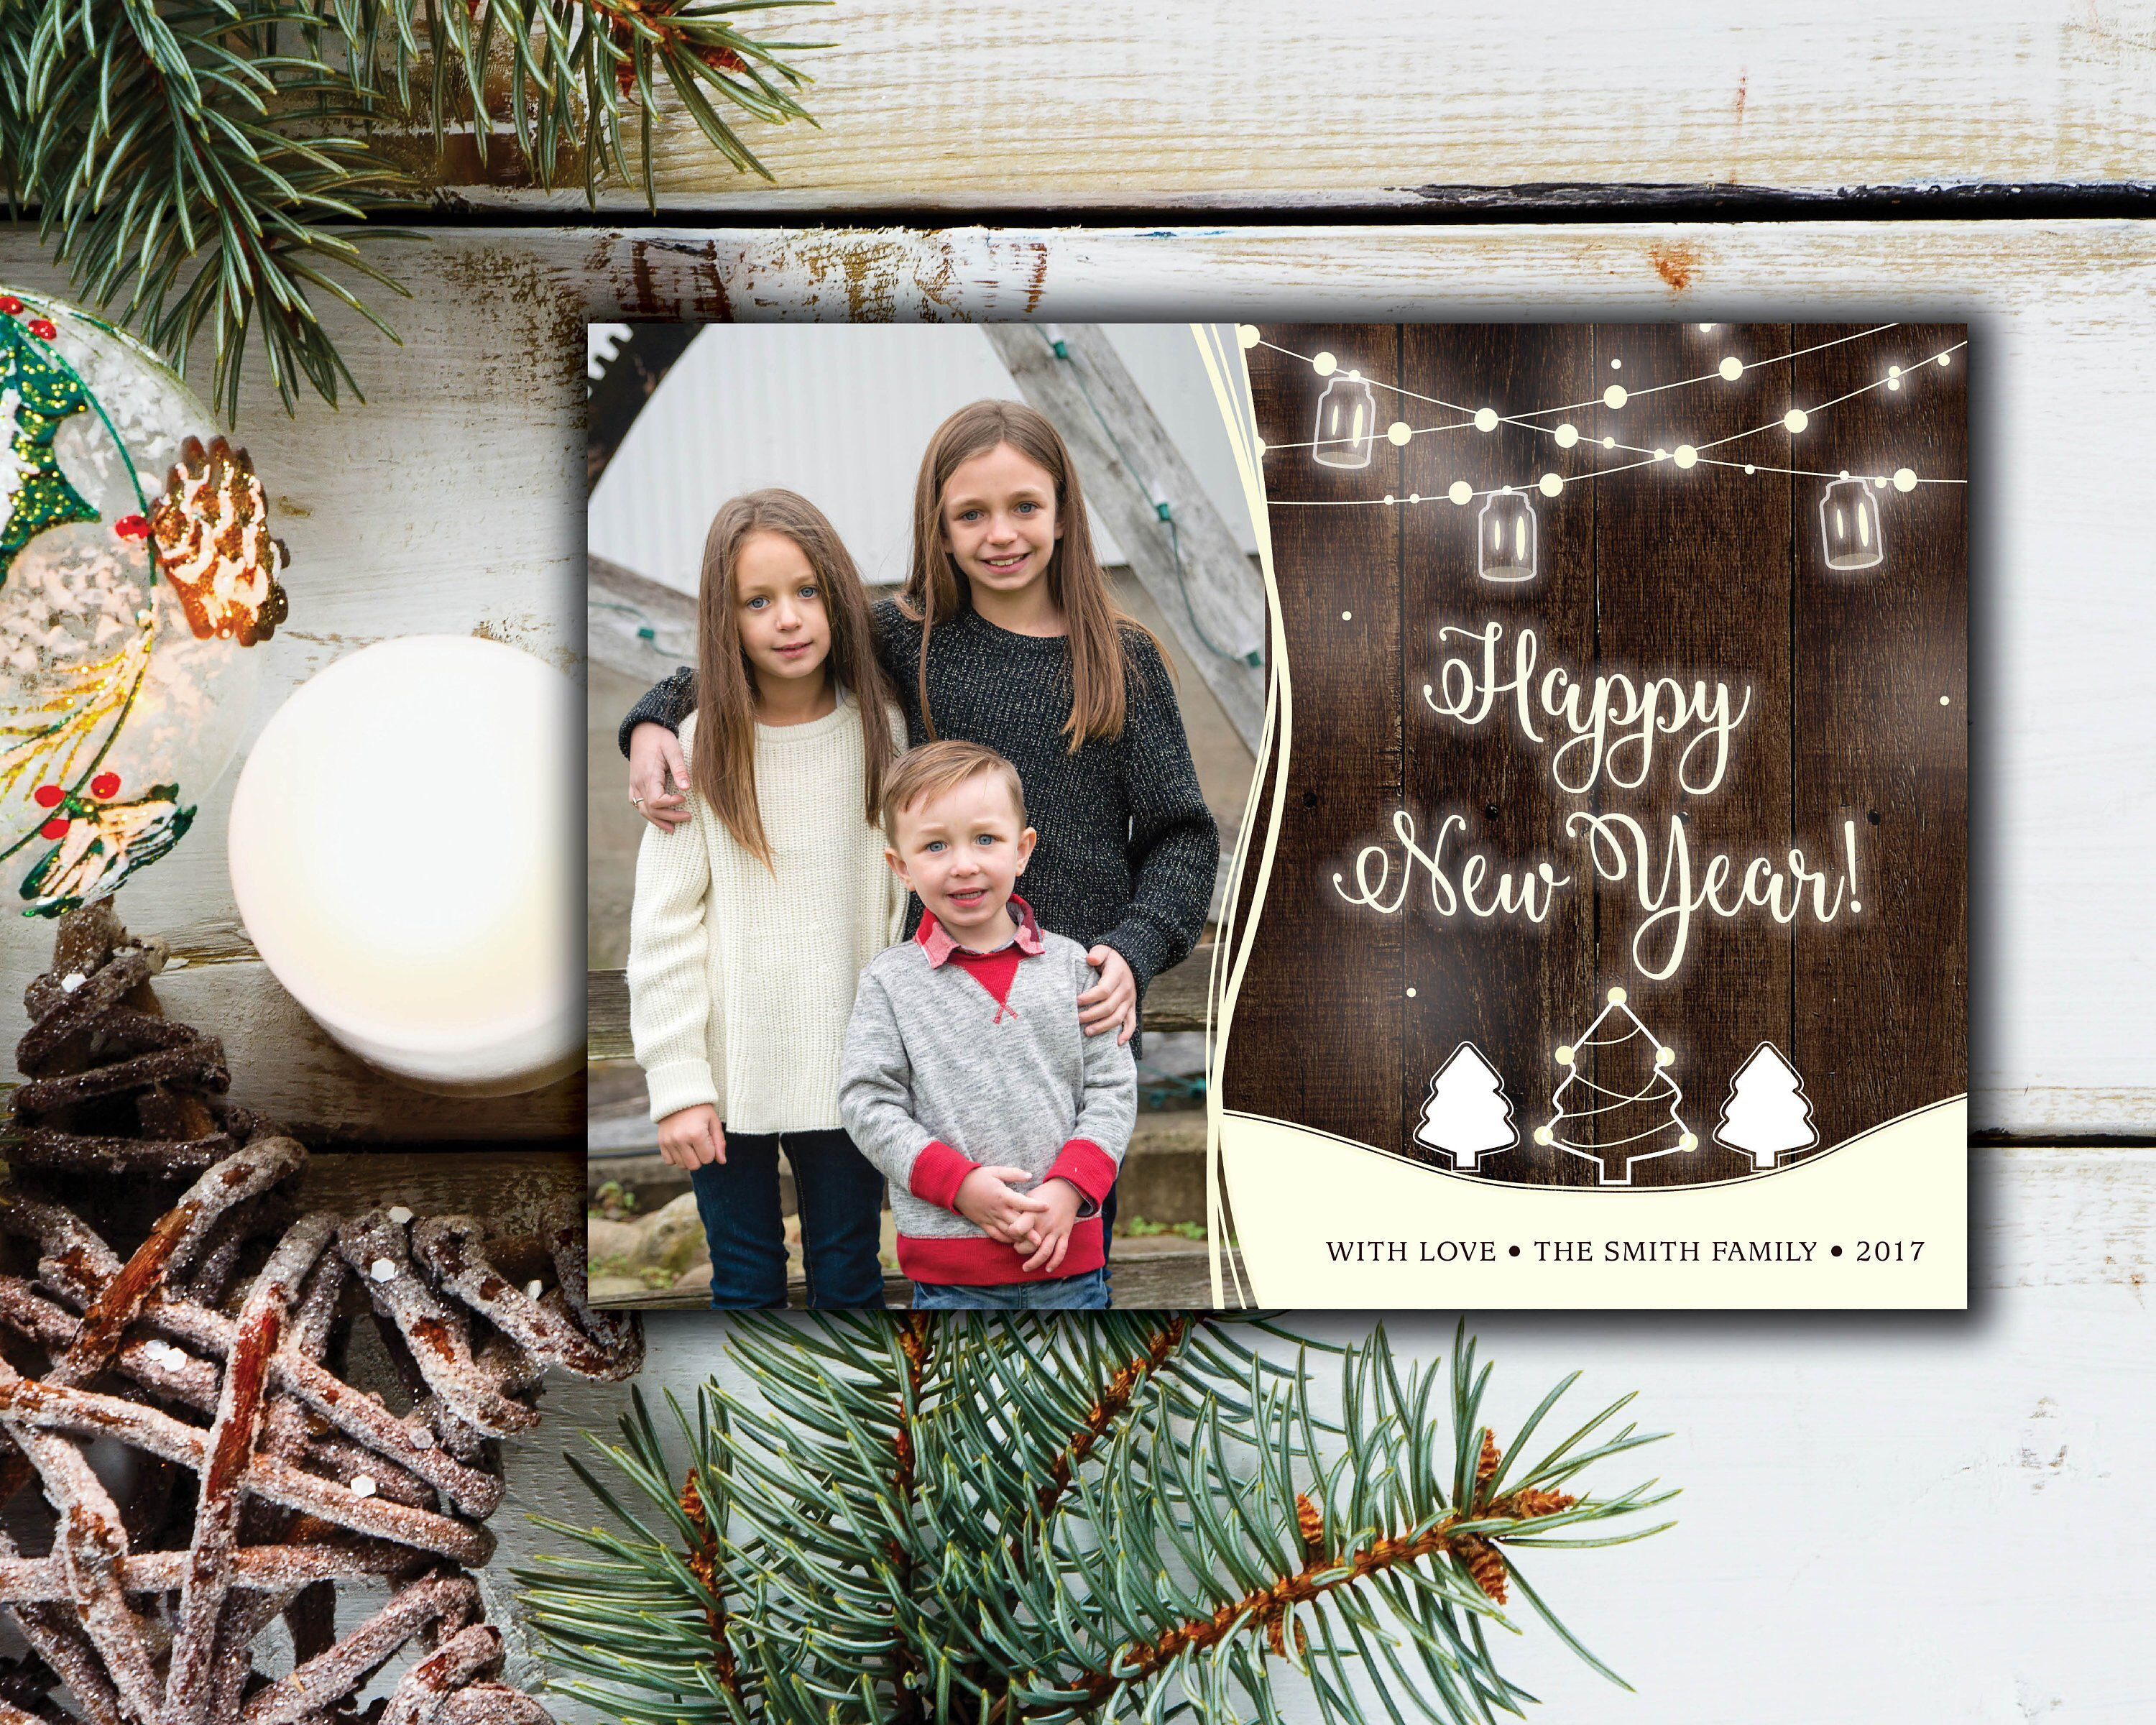 Rustic New Years Card With Photos Happy New Year Card Etsy Christmas Photo Cards Christmas Card Template Christmas Cards Etsy